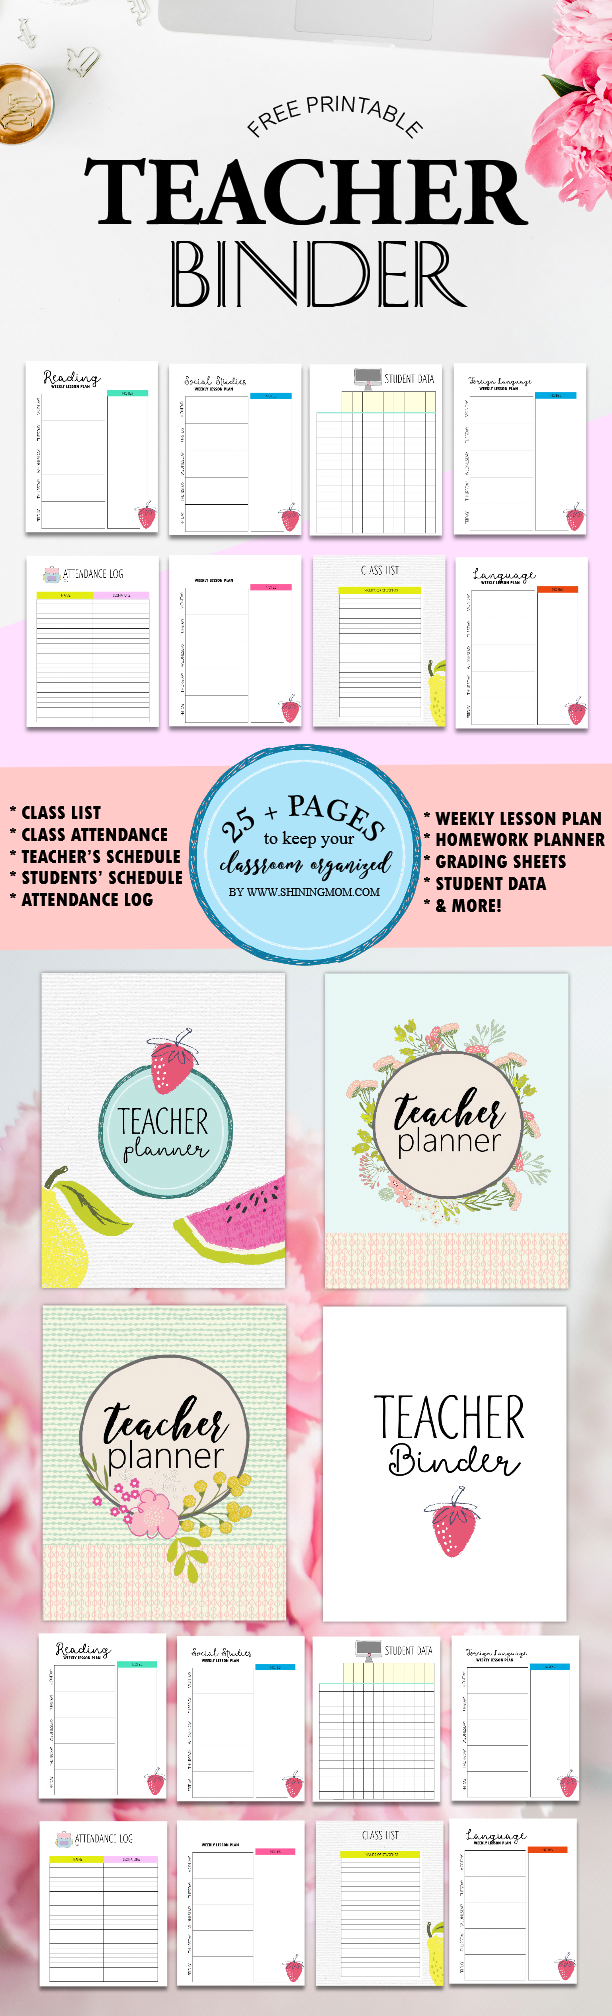 photograph about Free Printable Teacher Planner identify Absolutely free Trainer Binder Printables: Previously mentioned 25 Beautiful Building